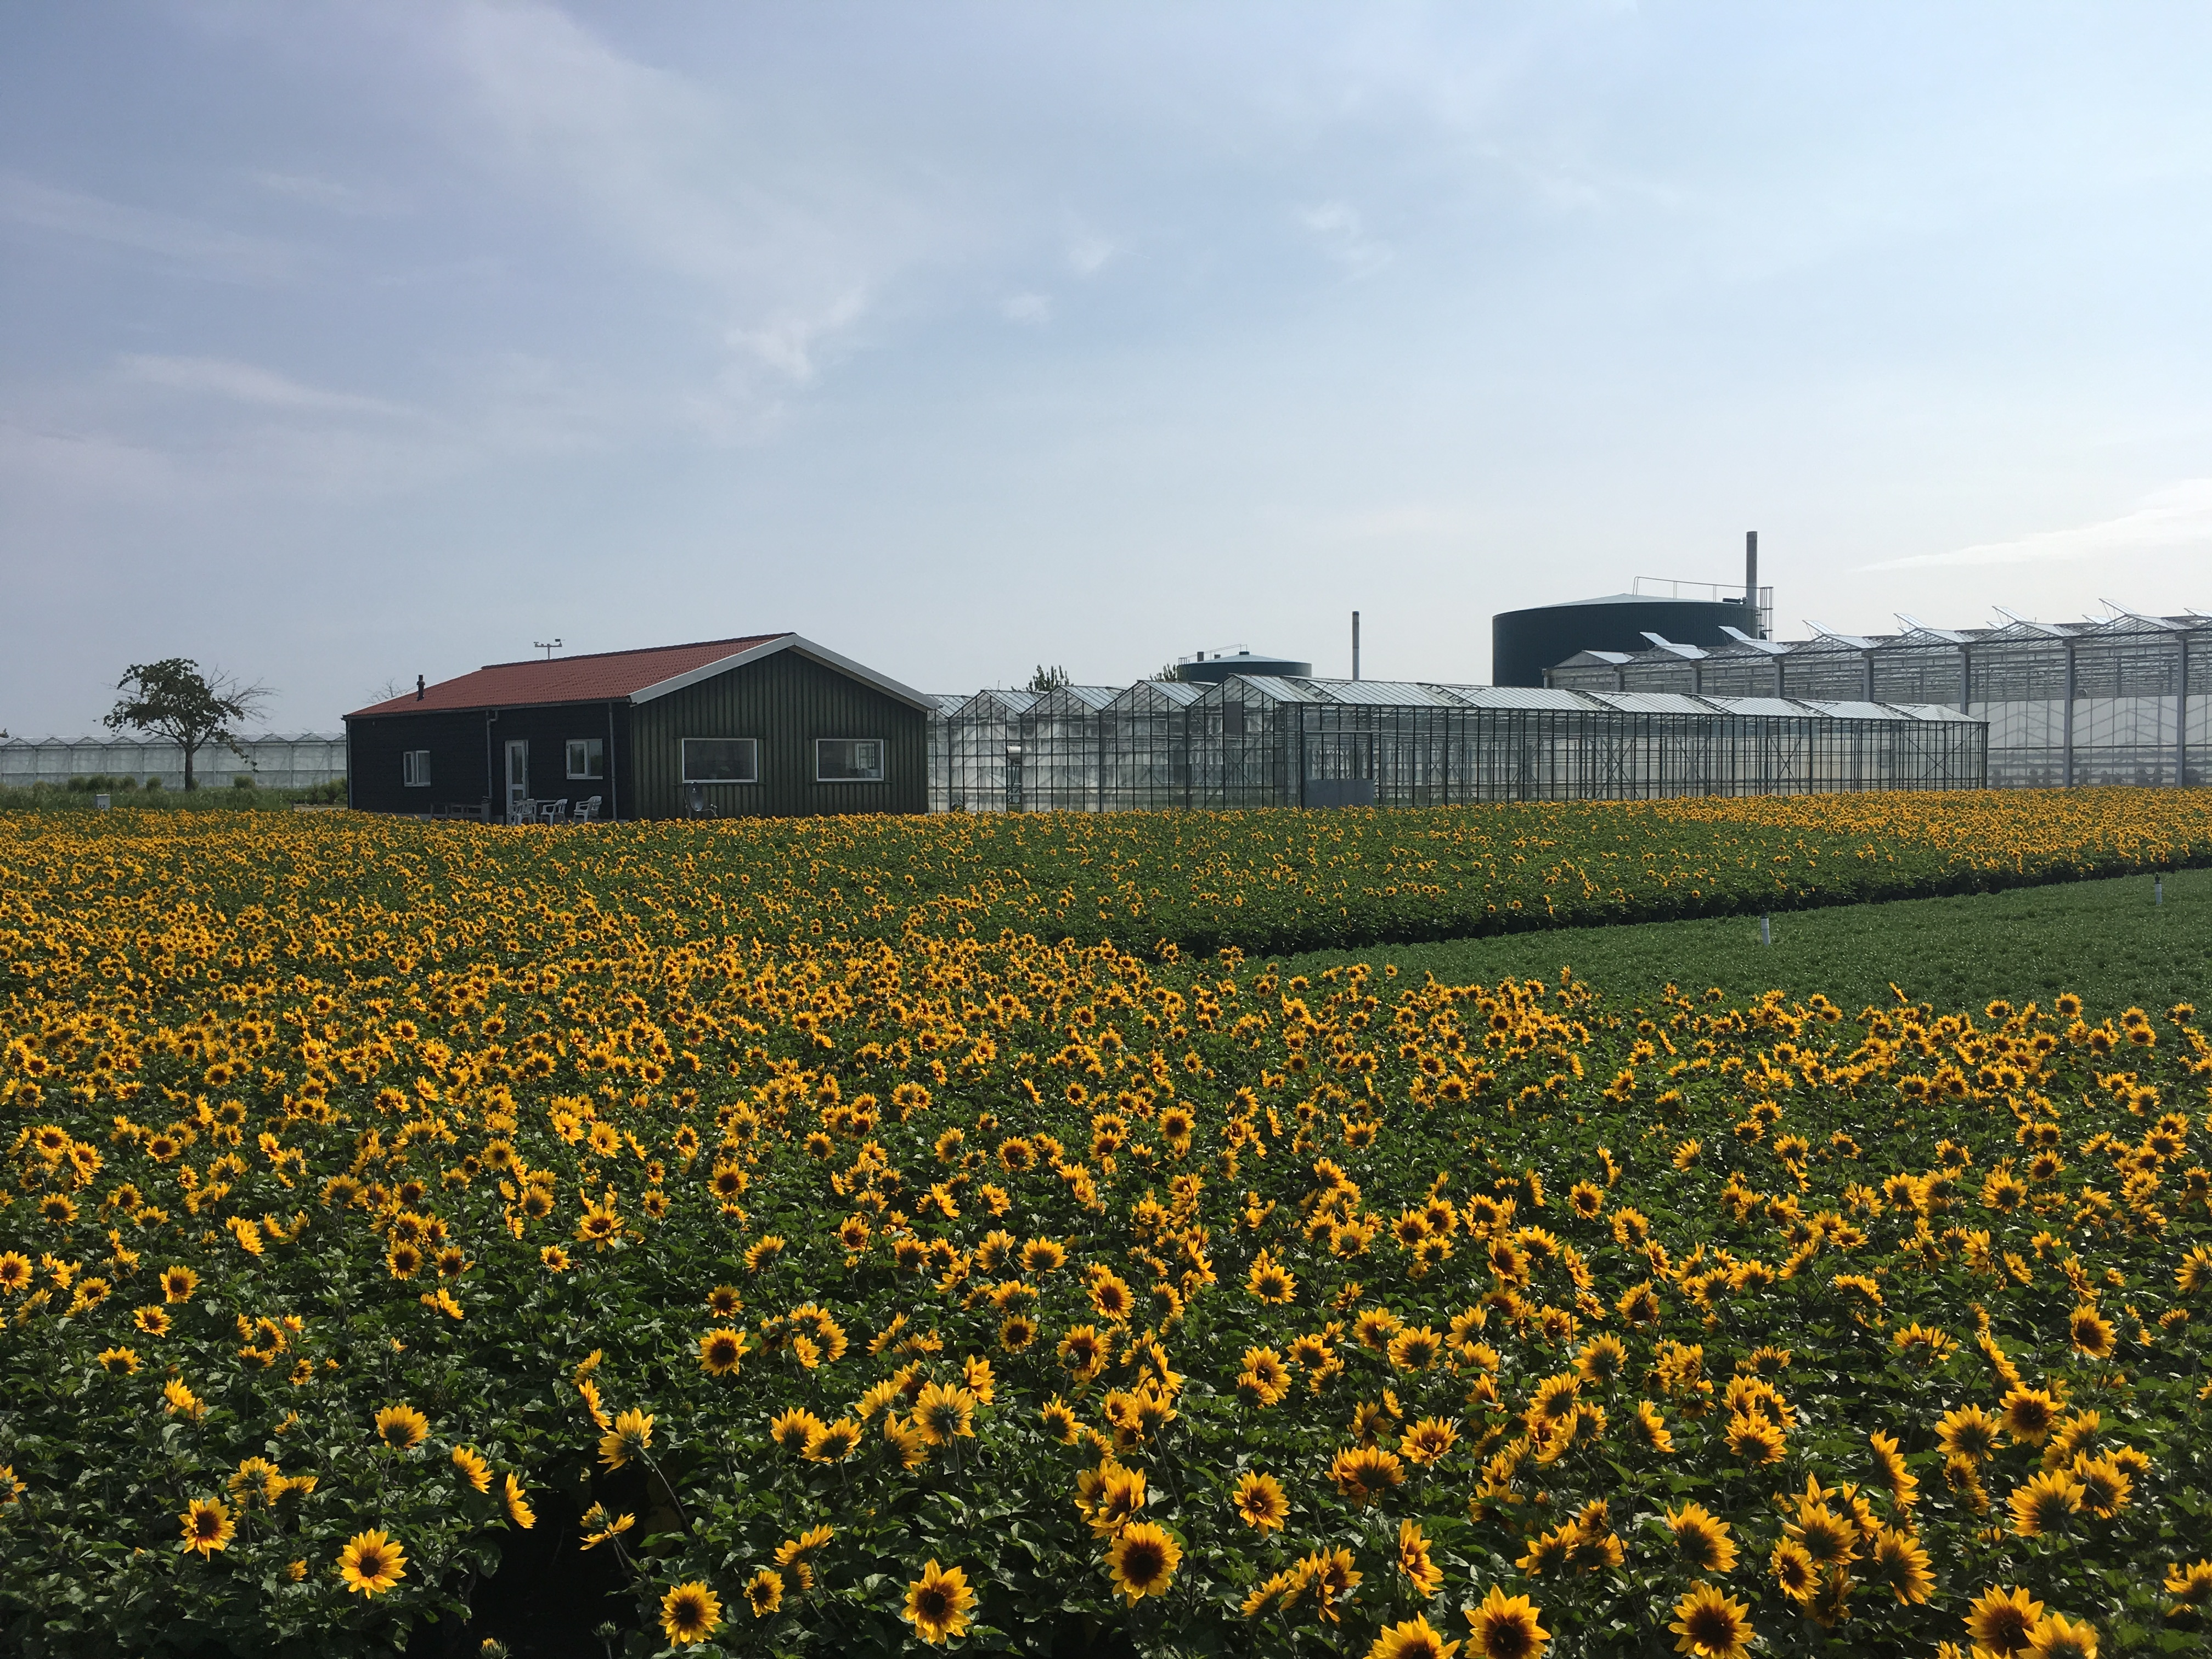 Dutch flower growers use smart sensors to prevent leaching into groundwater